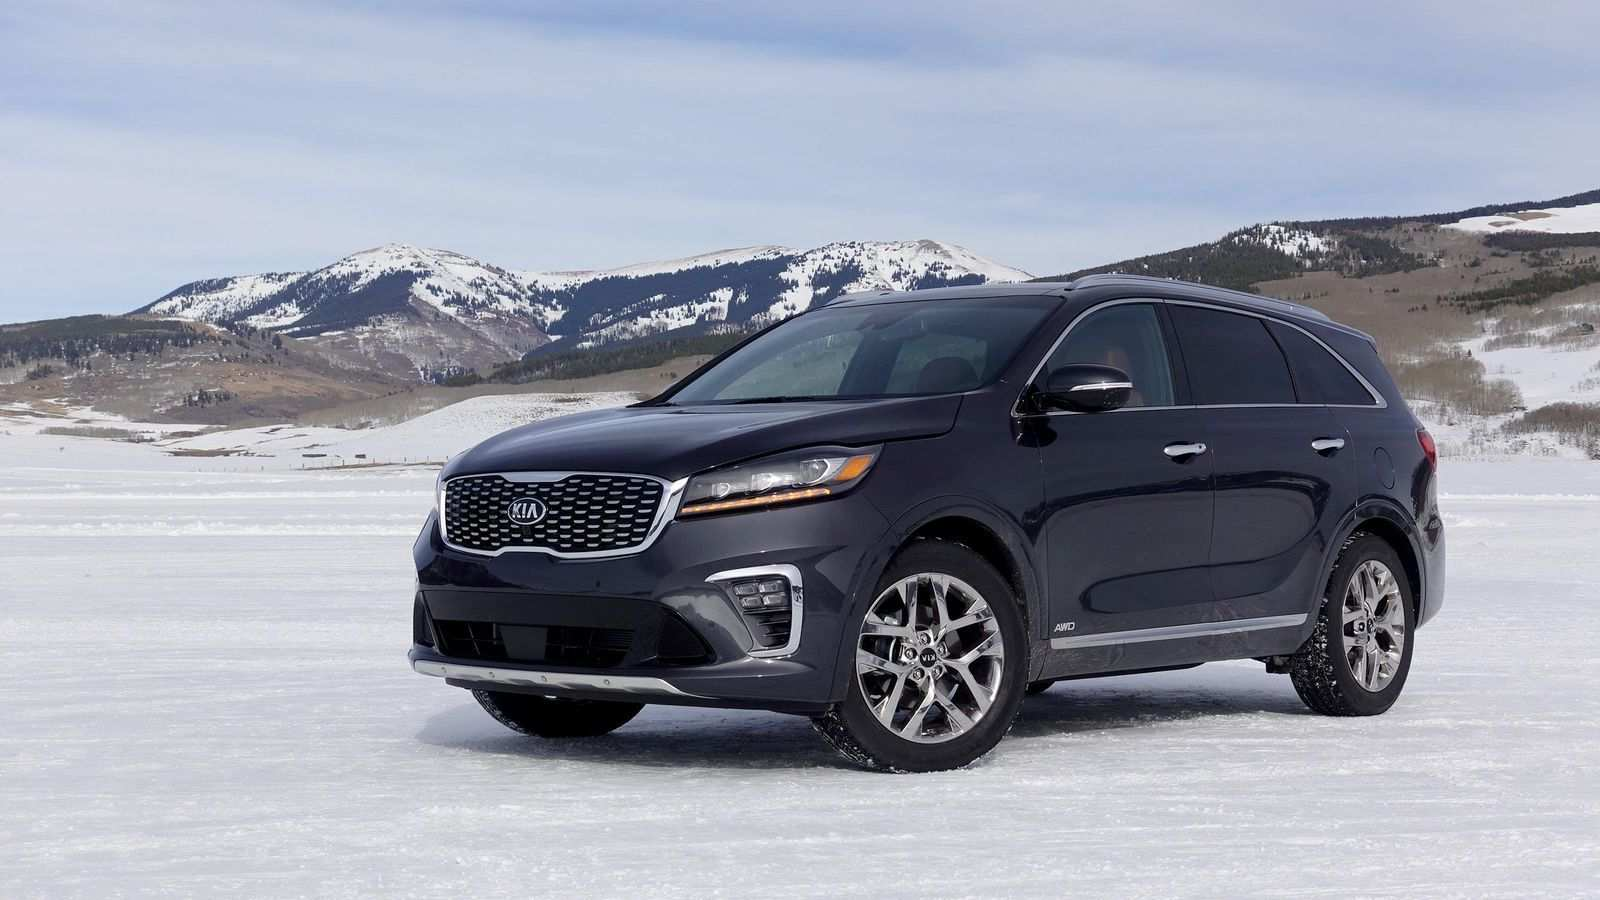 56 Gallery of Kia Sorento 2020 Redesign Photos with Kia Sorento 2020 Redesign